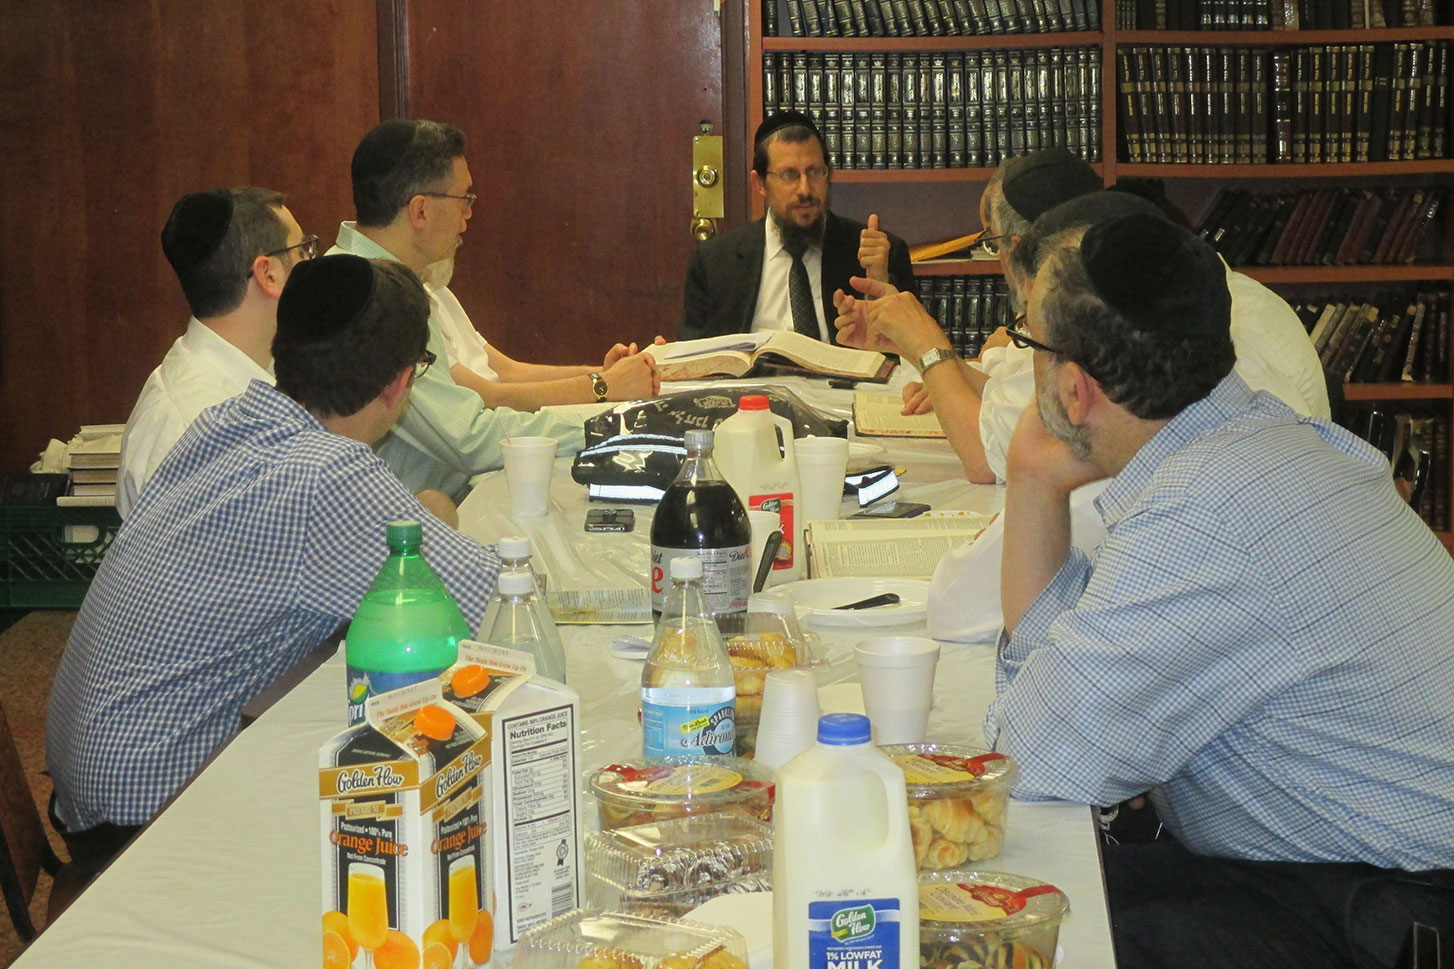 Shiur and brunch in Flatbush